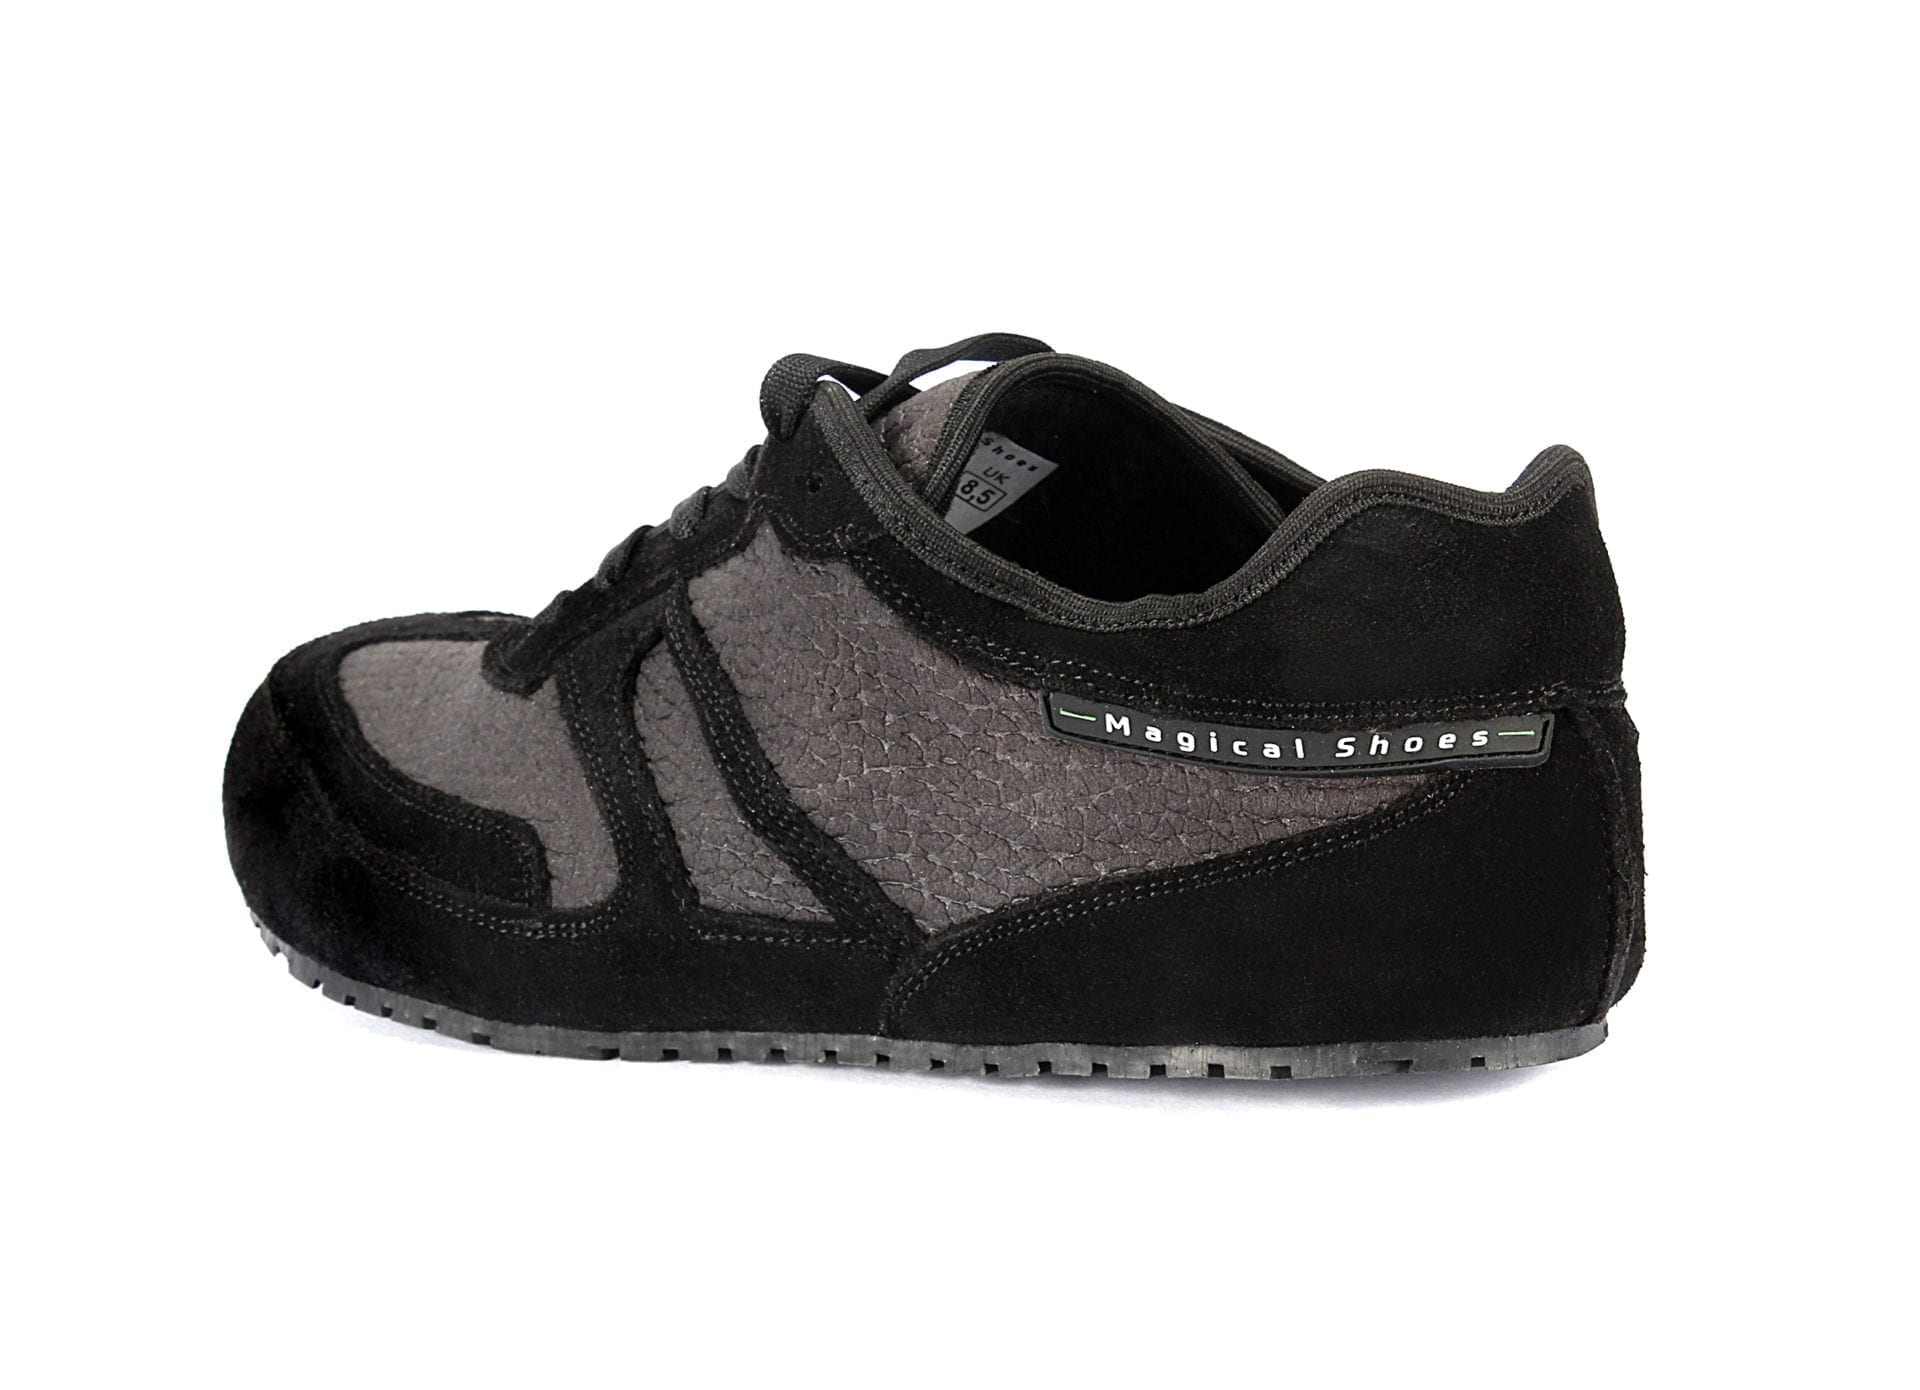 running shoes barefoot shoes for natural running walking wide shoes comfortable women shoes natural footwear